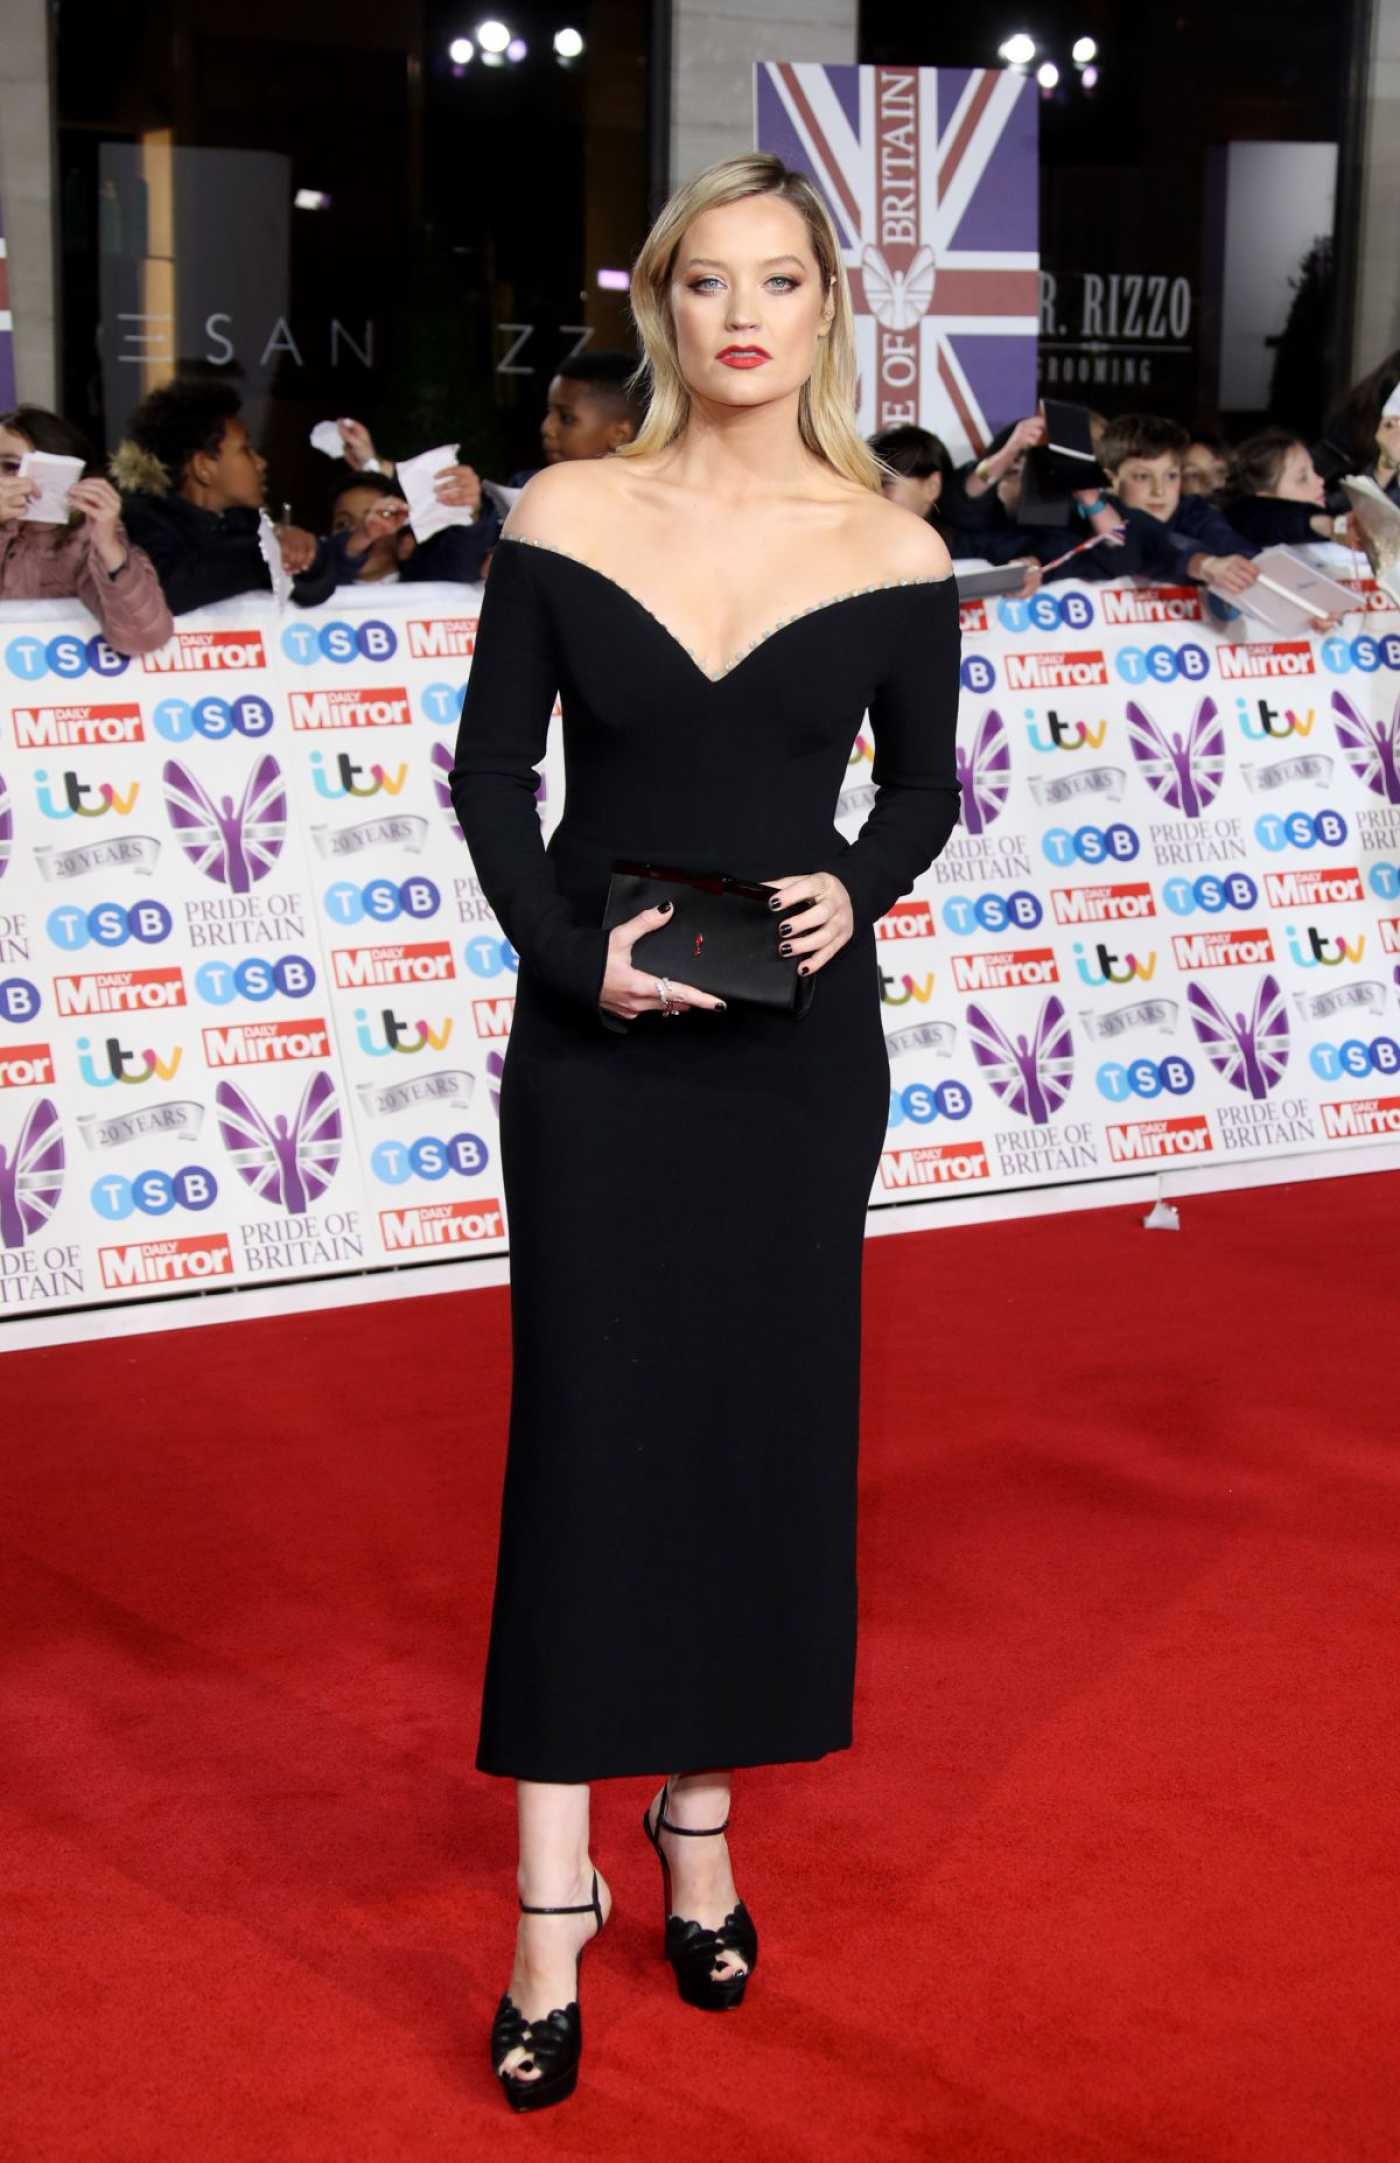 Laura Whitmore Attends 2019 Pride of Britain Awards in London 10/28/2019